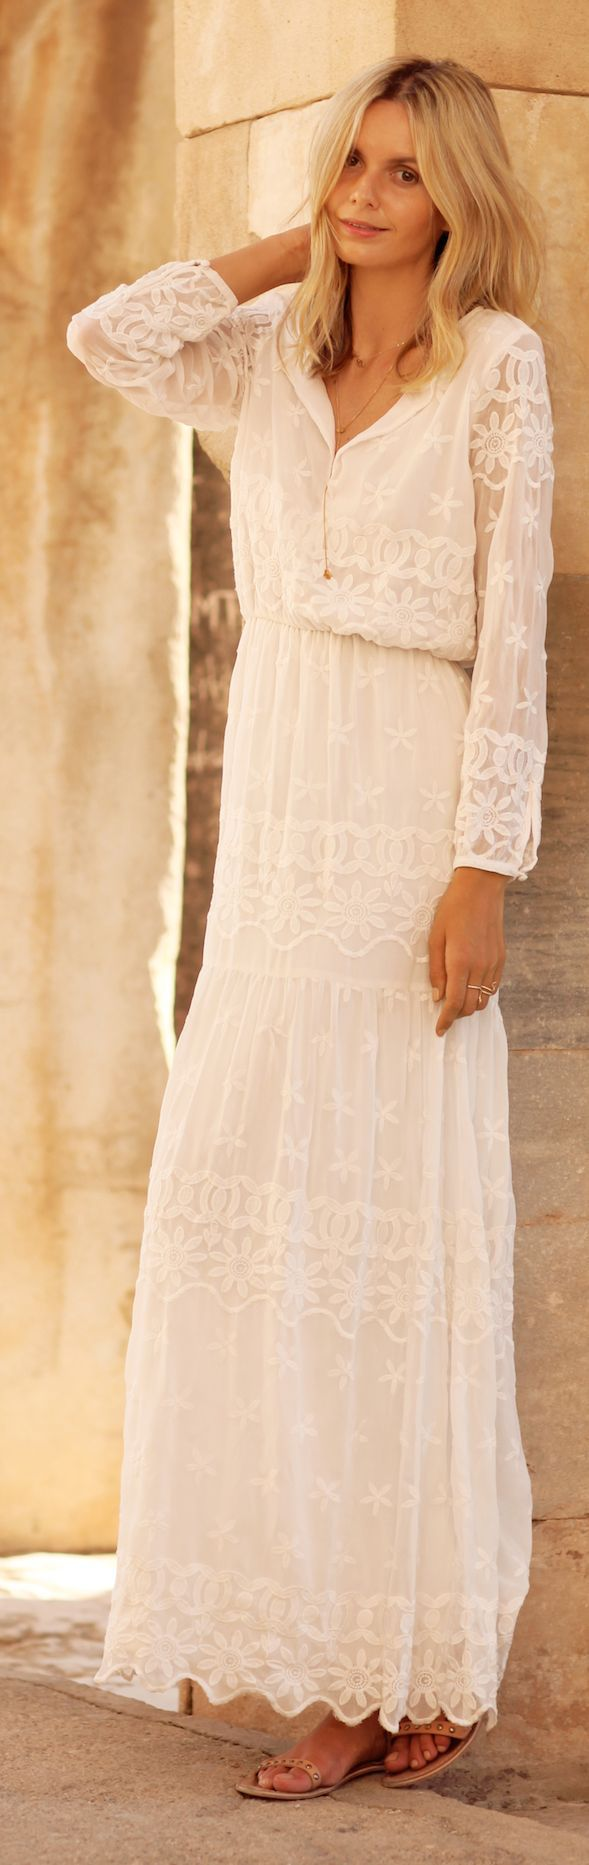 White Lace Maxi Dress by Tuula That is gorgeous - Best 25+ Lace Maxi Dresses Ideas On Pinterest Lace Maxi, Maxi